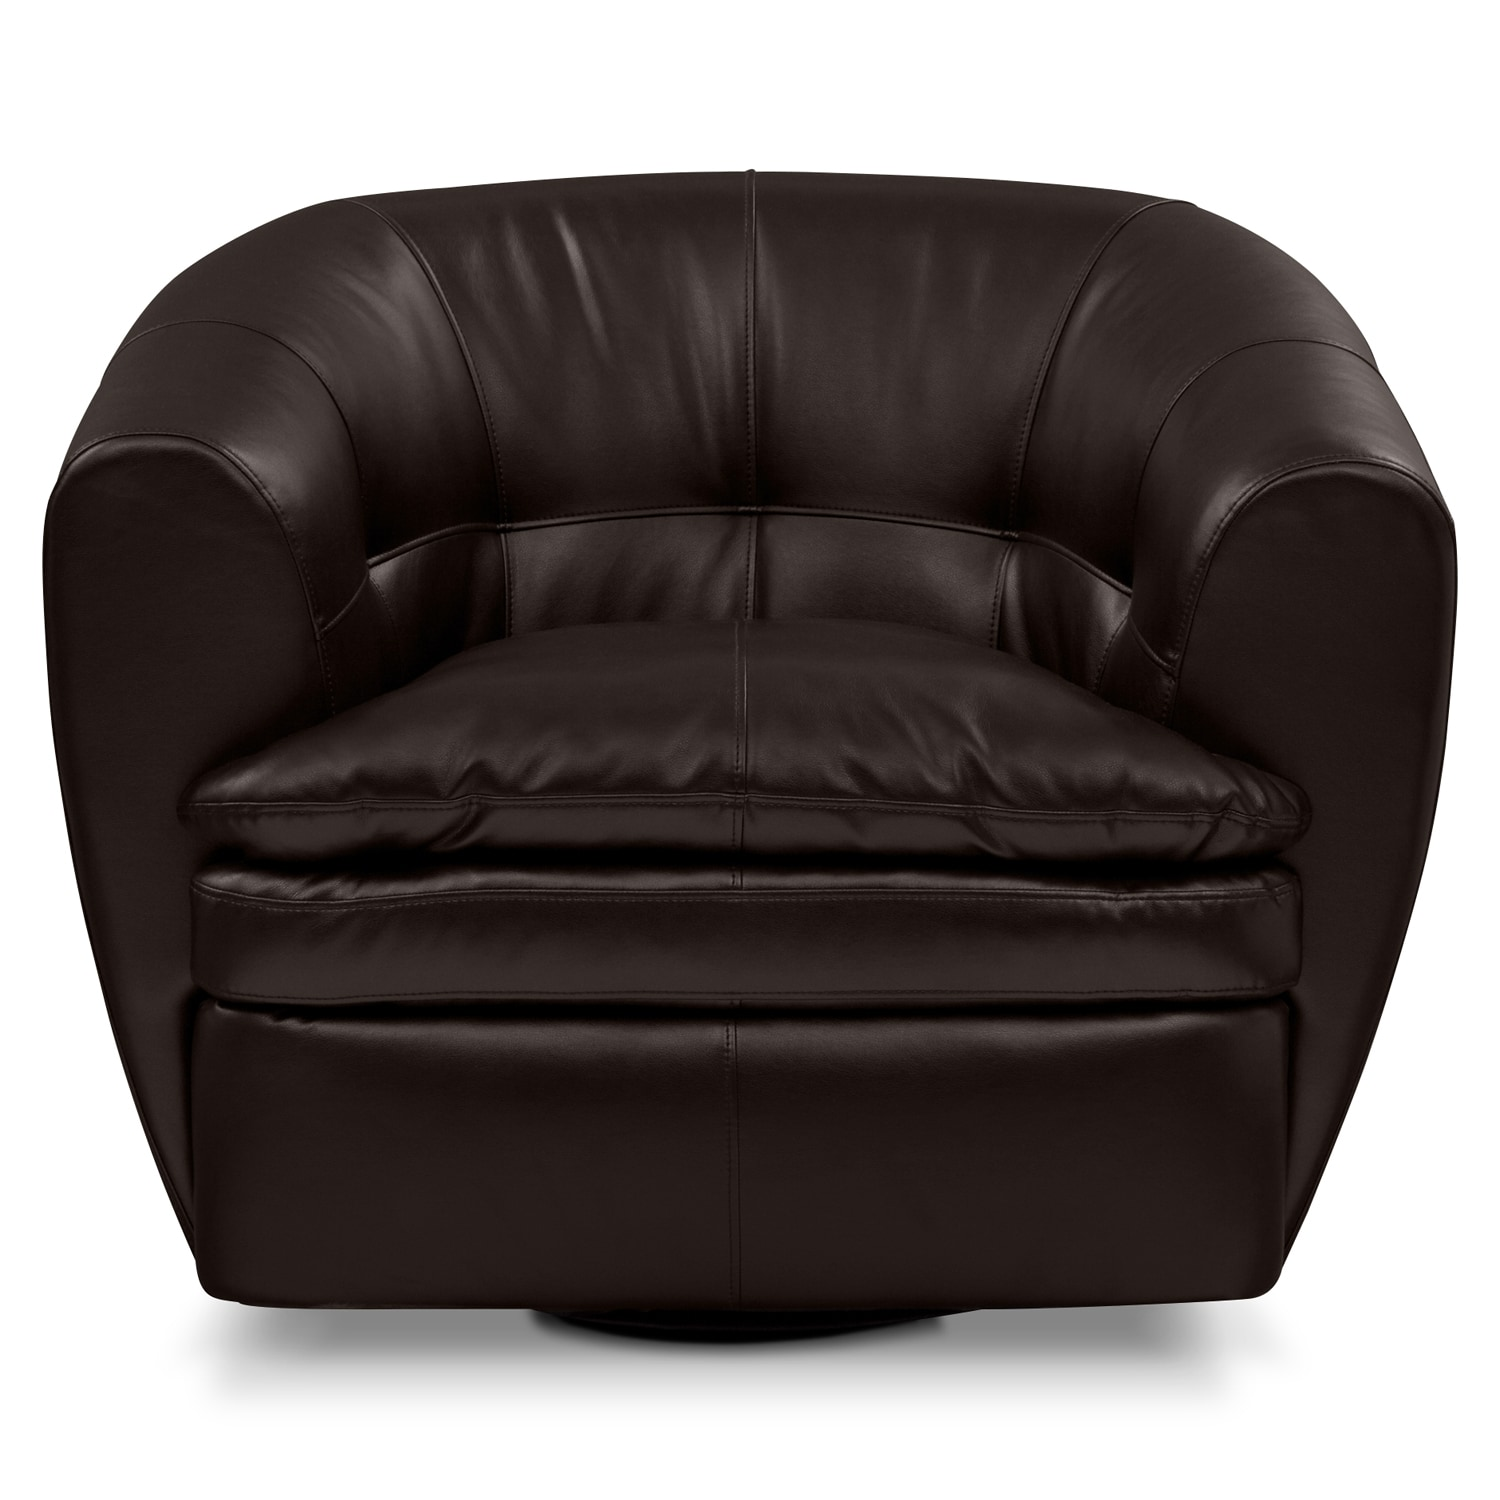 Coming soon - Swivel chair living room furniture ...